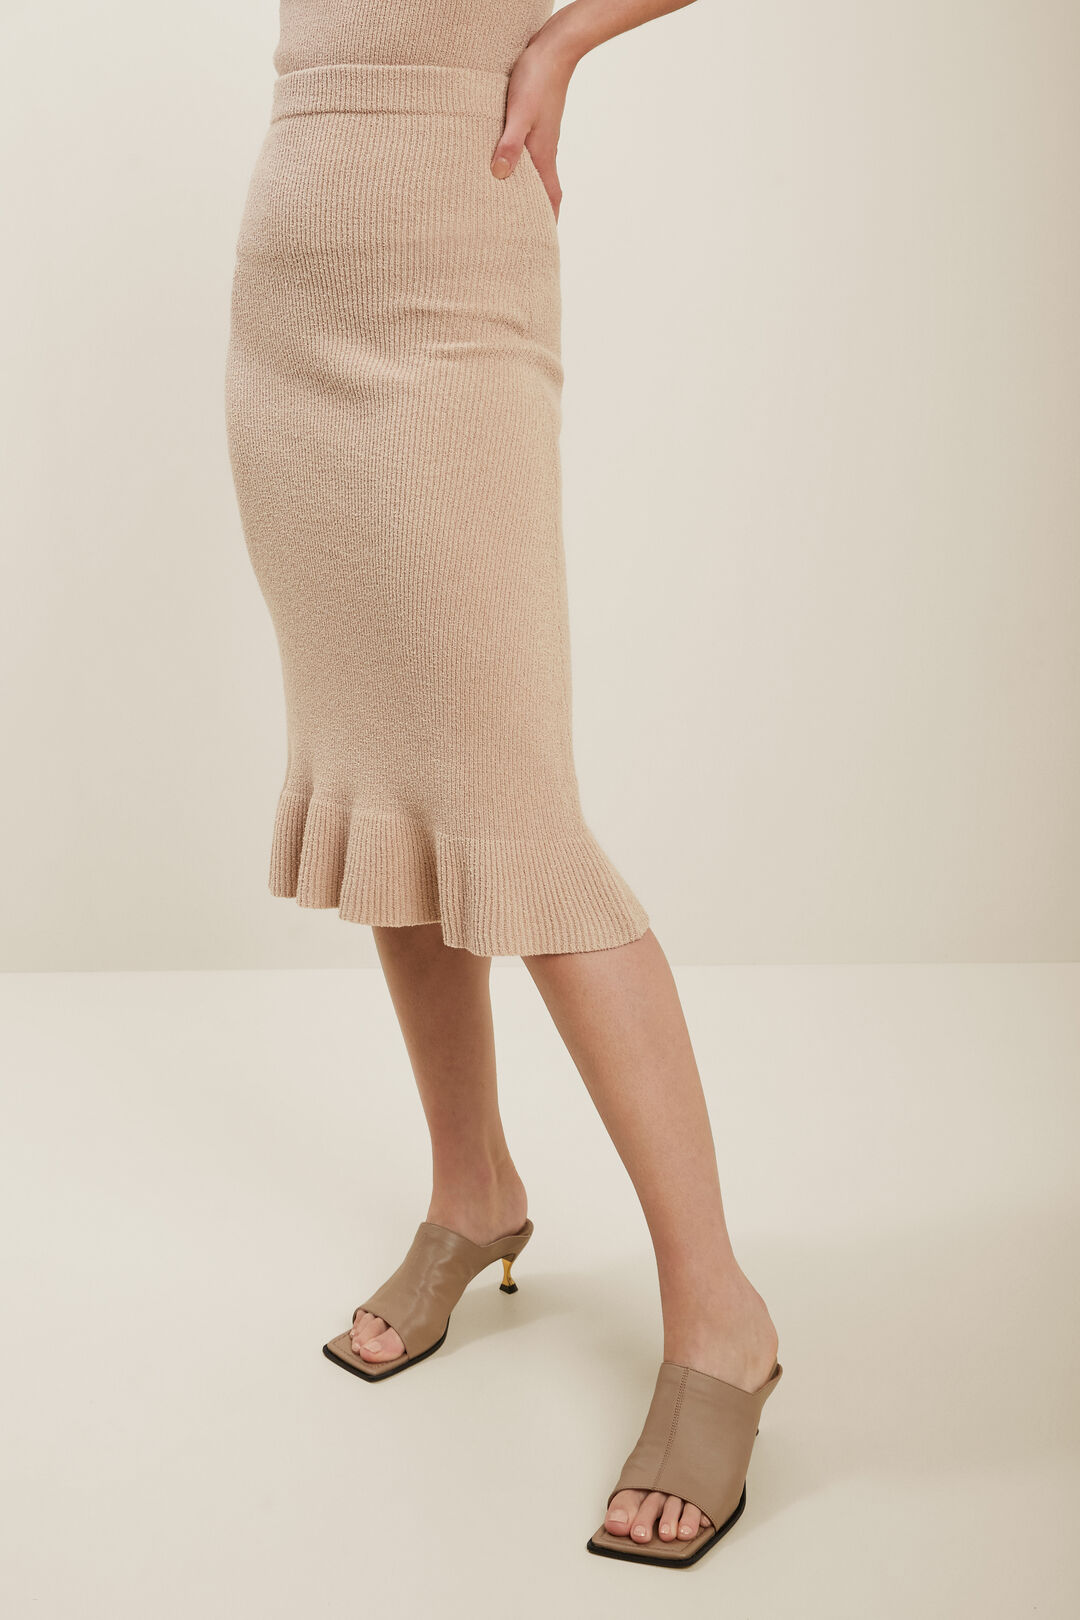 Boucle Knit Skirt  Biscotti  hi-res